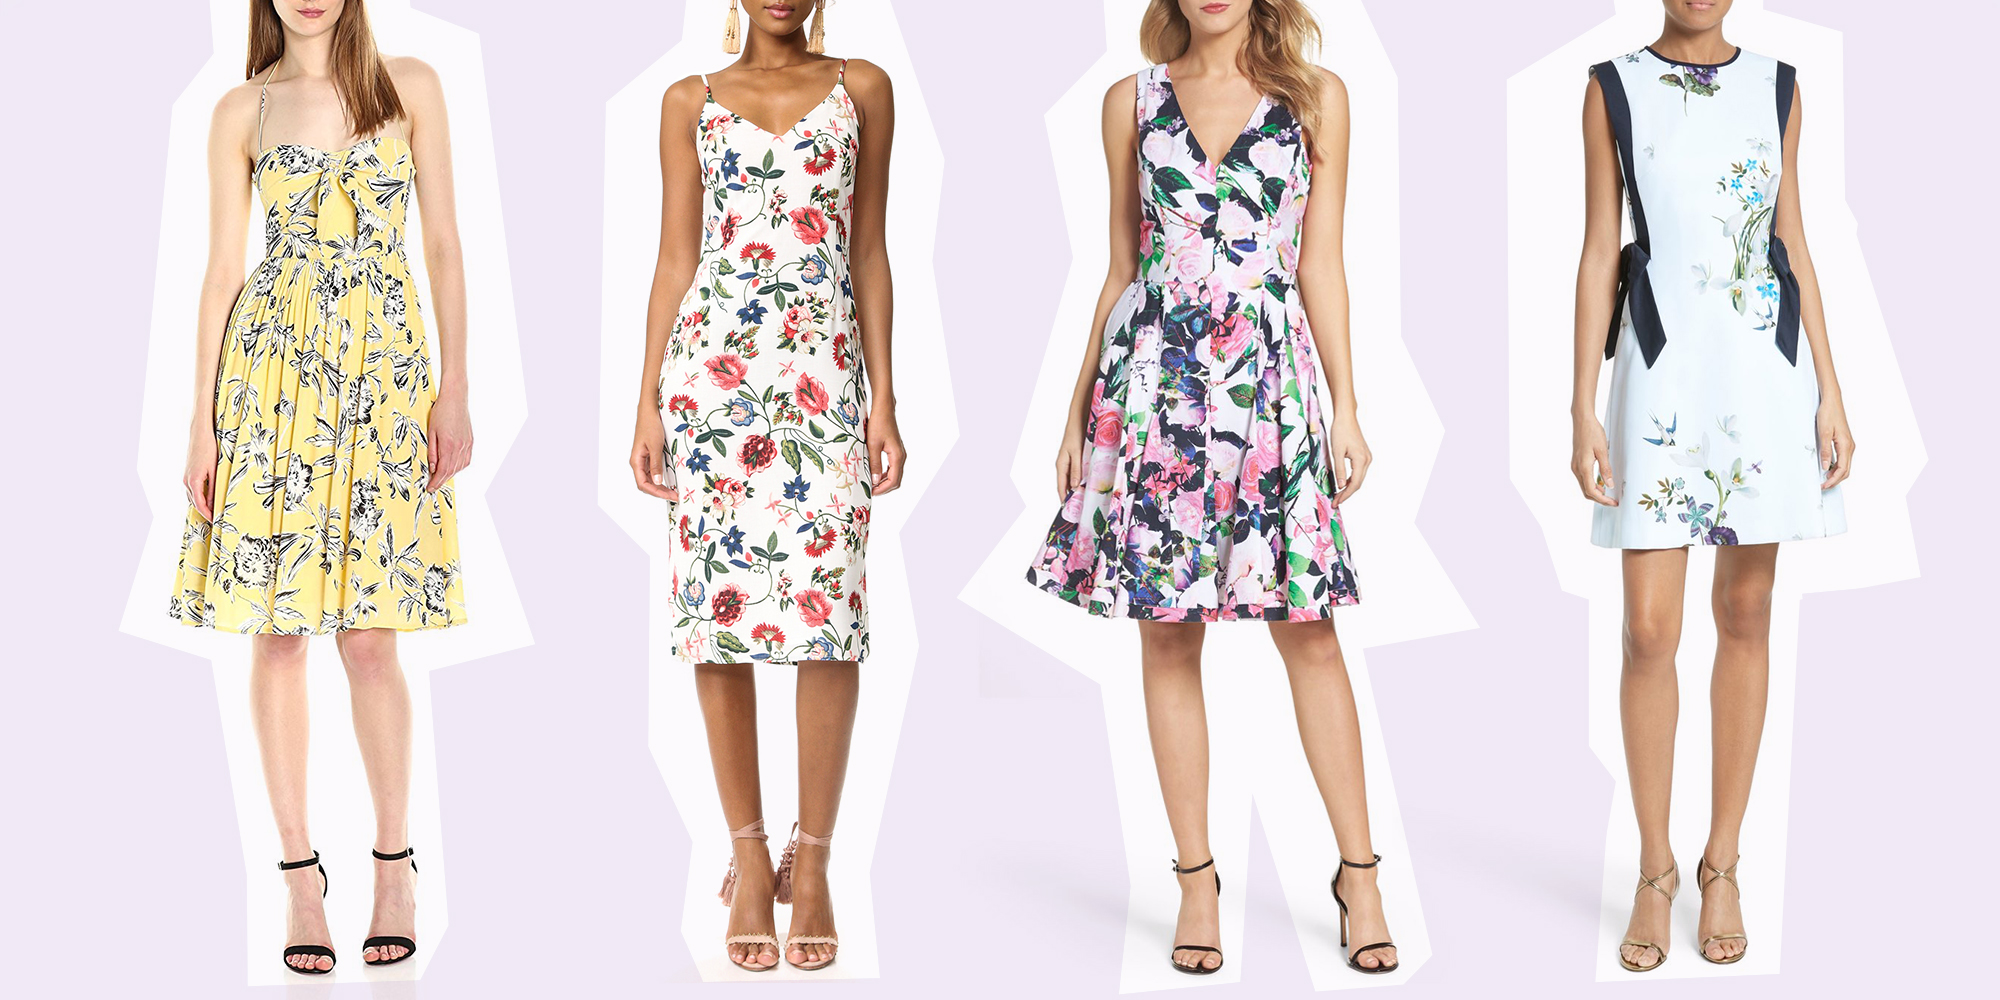 10 Best Floral Dresses For Kentucky Derby 2018 Floral